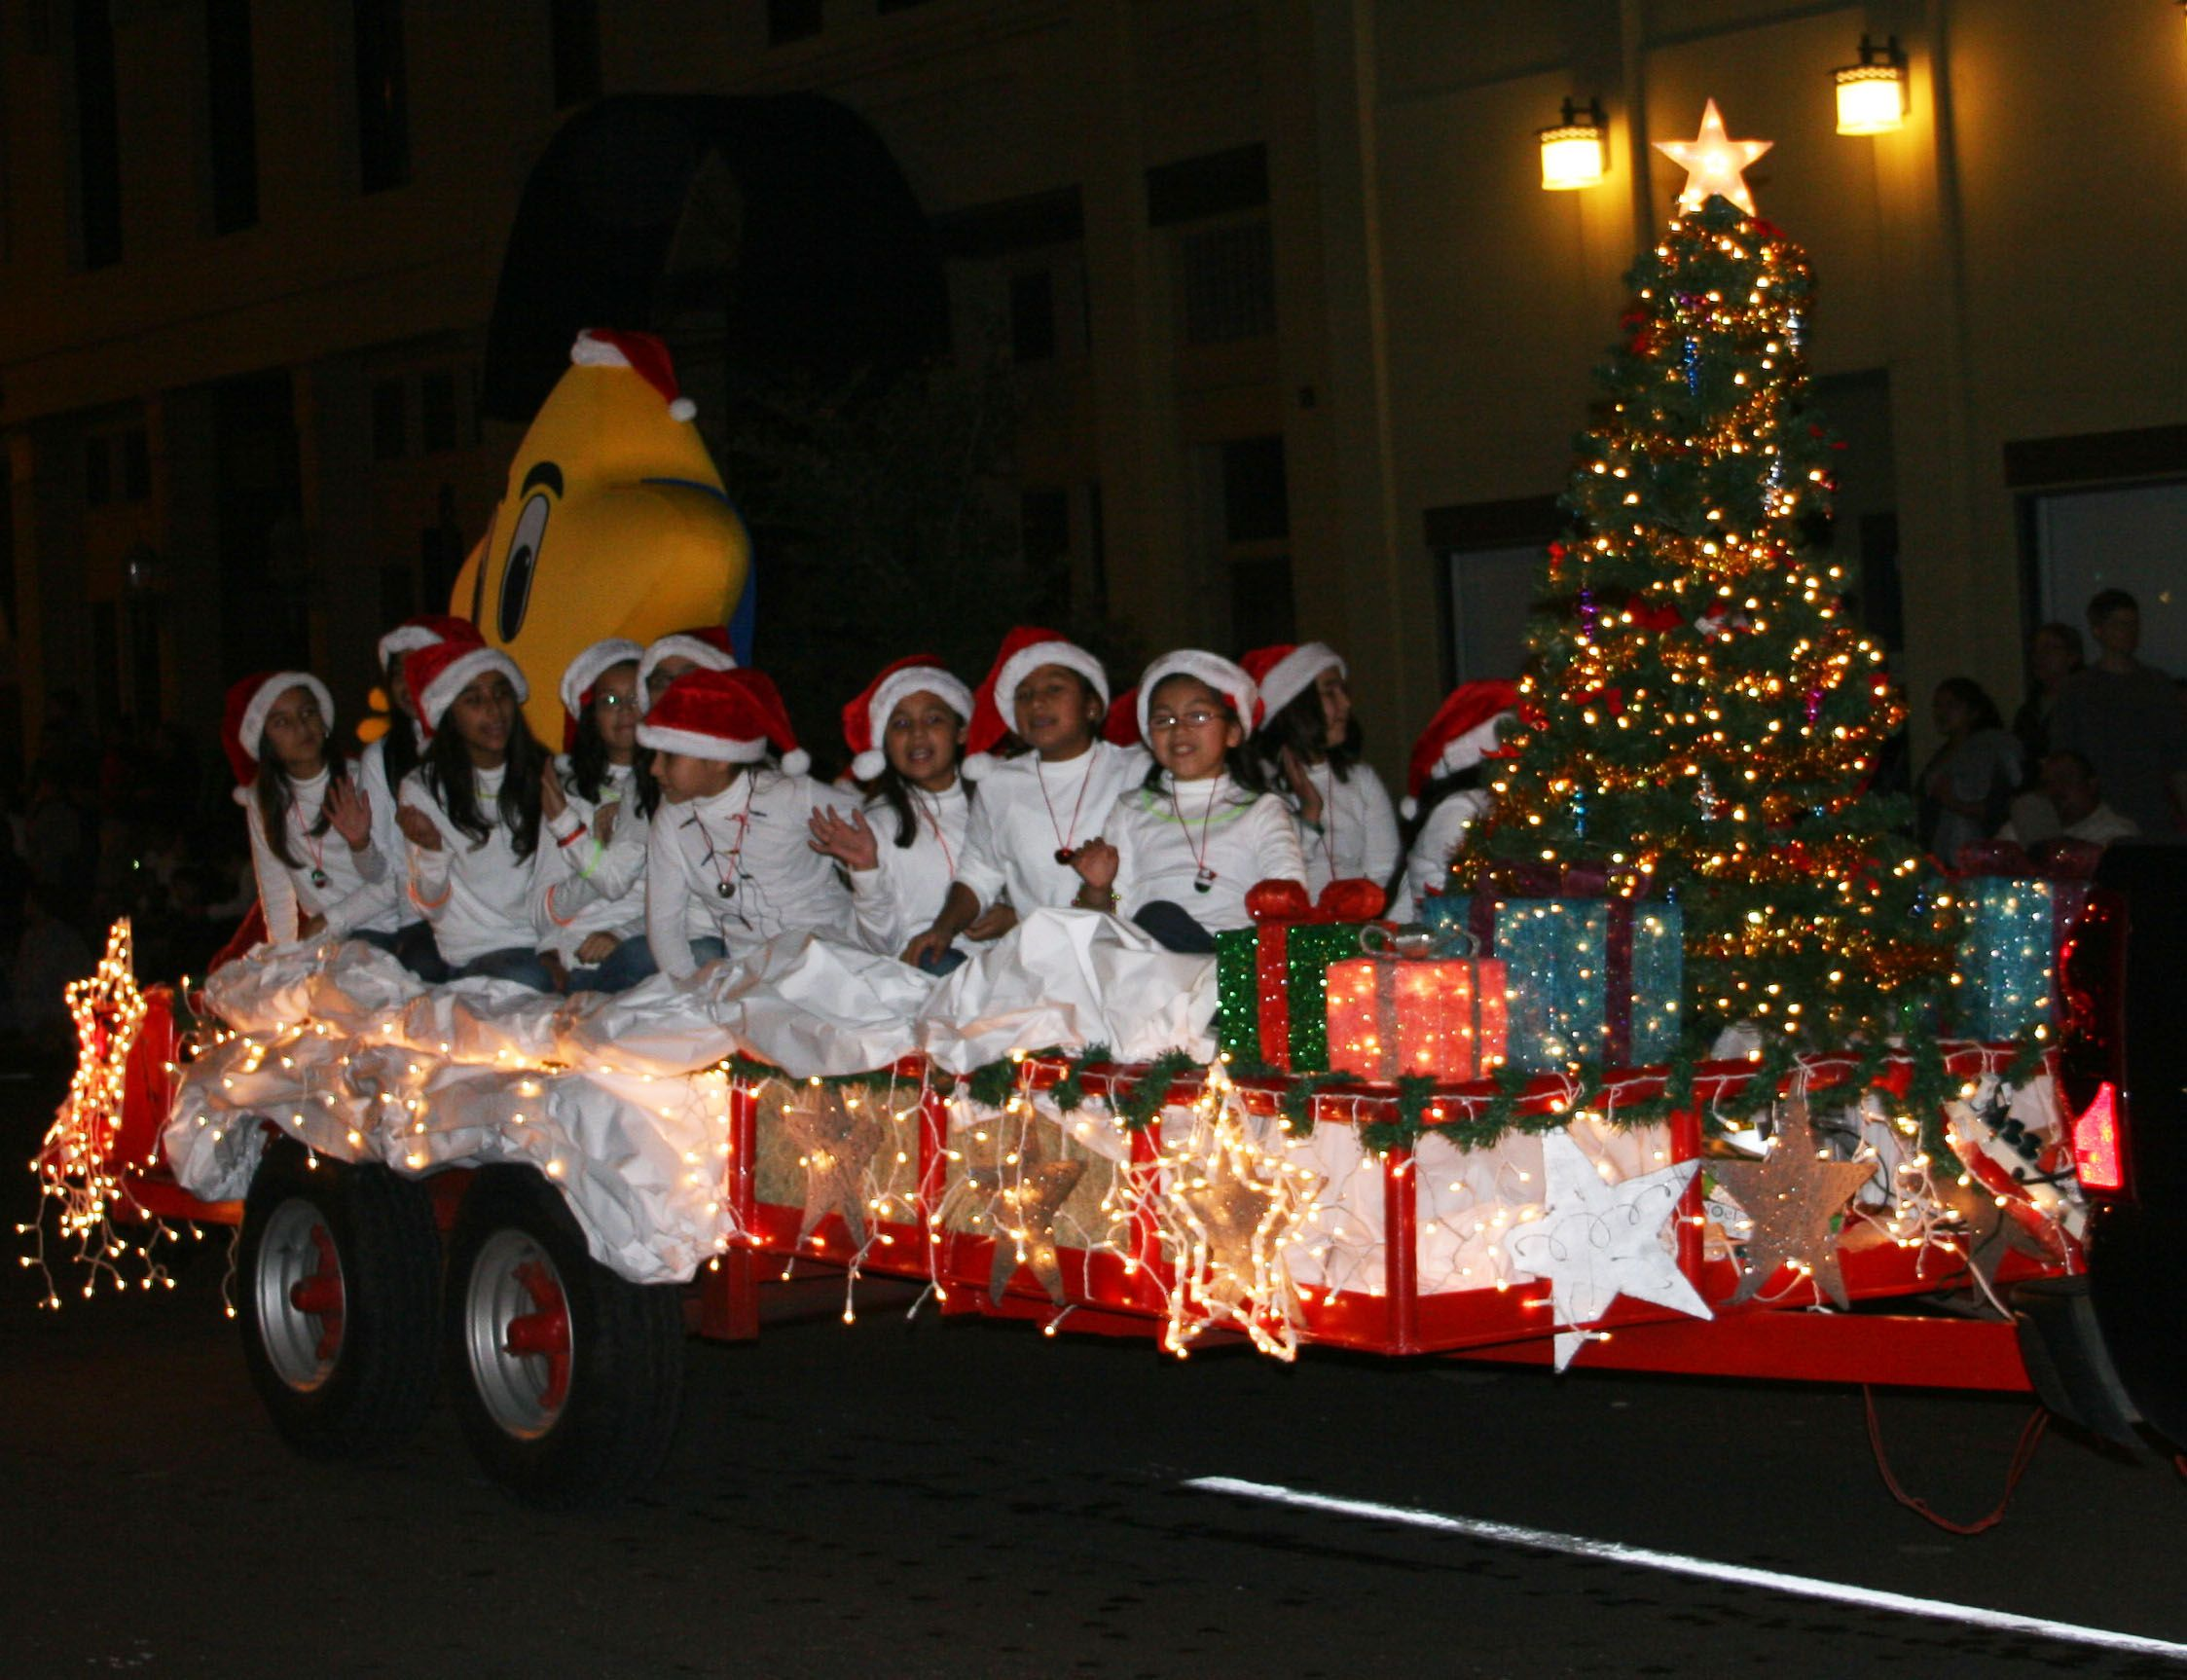 Christmas Float Ideas With Lights.2011 Lighted Christmas Parade Star Float3 Kixs Fm 108